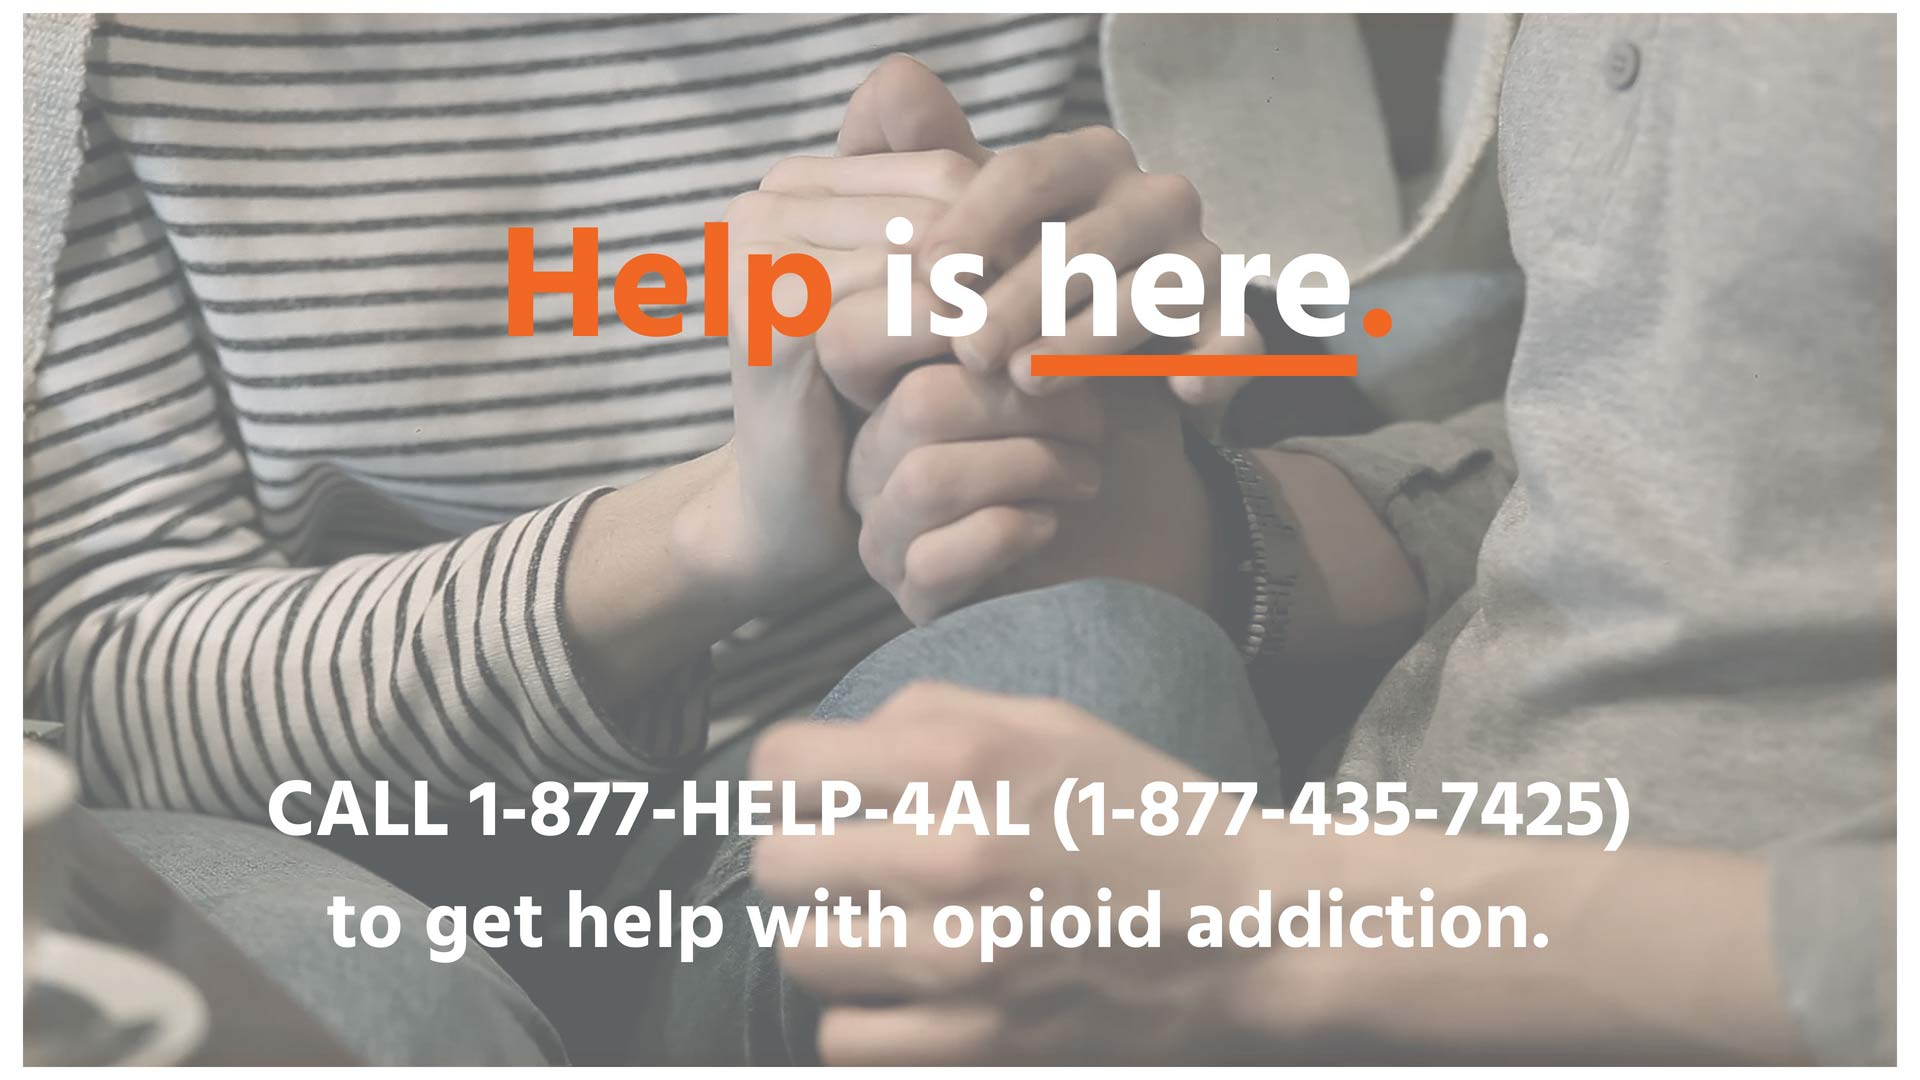 Help is here. CALL